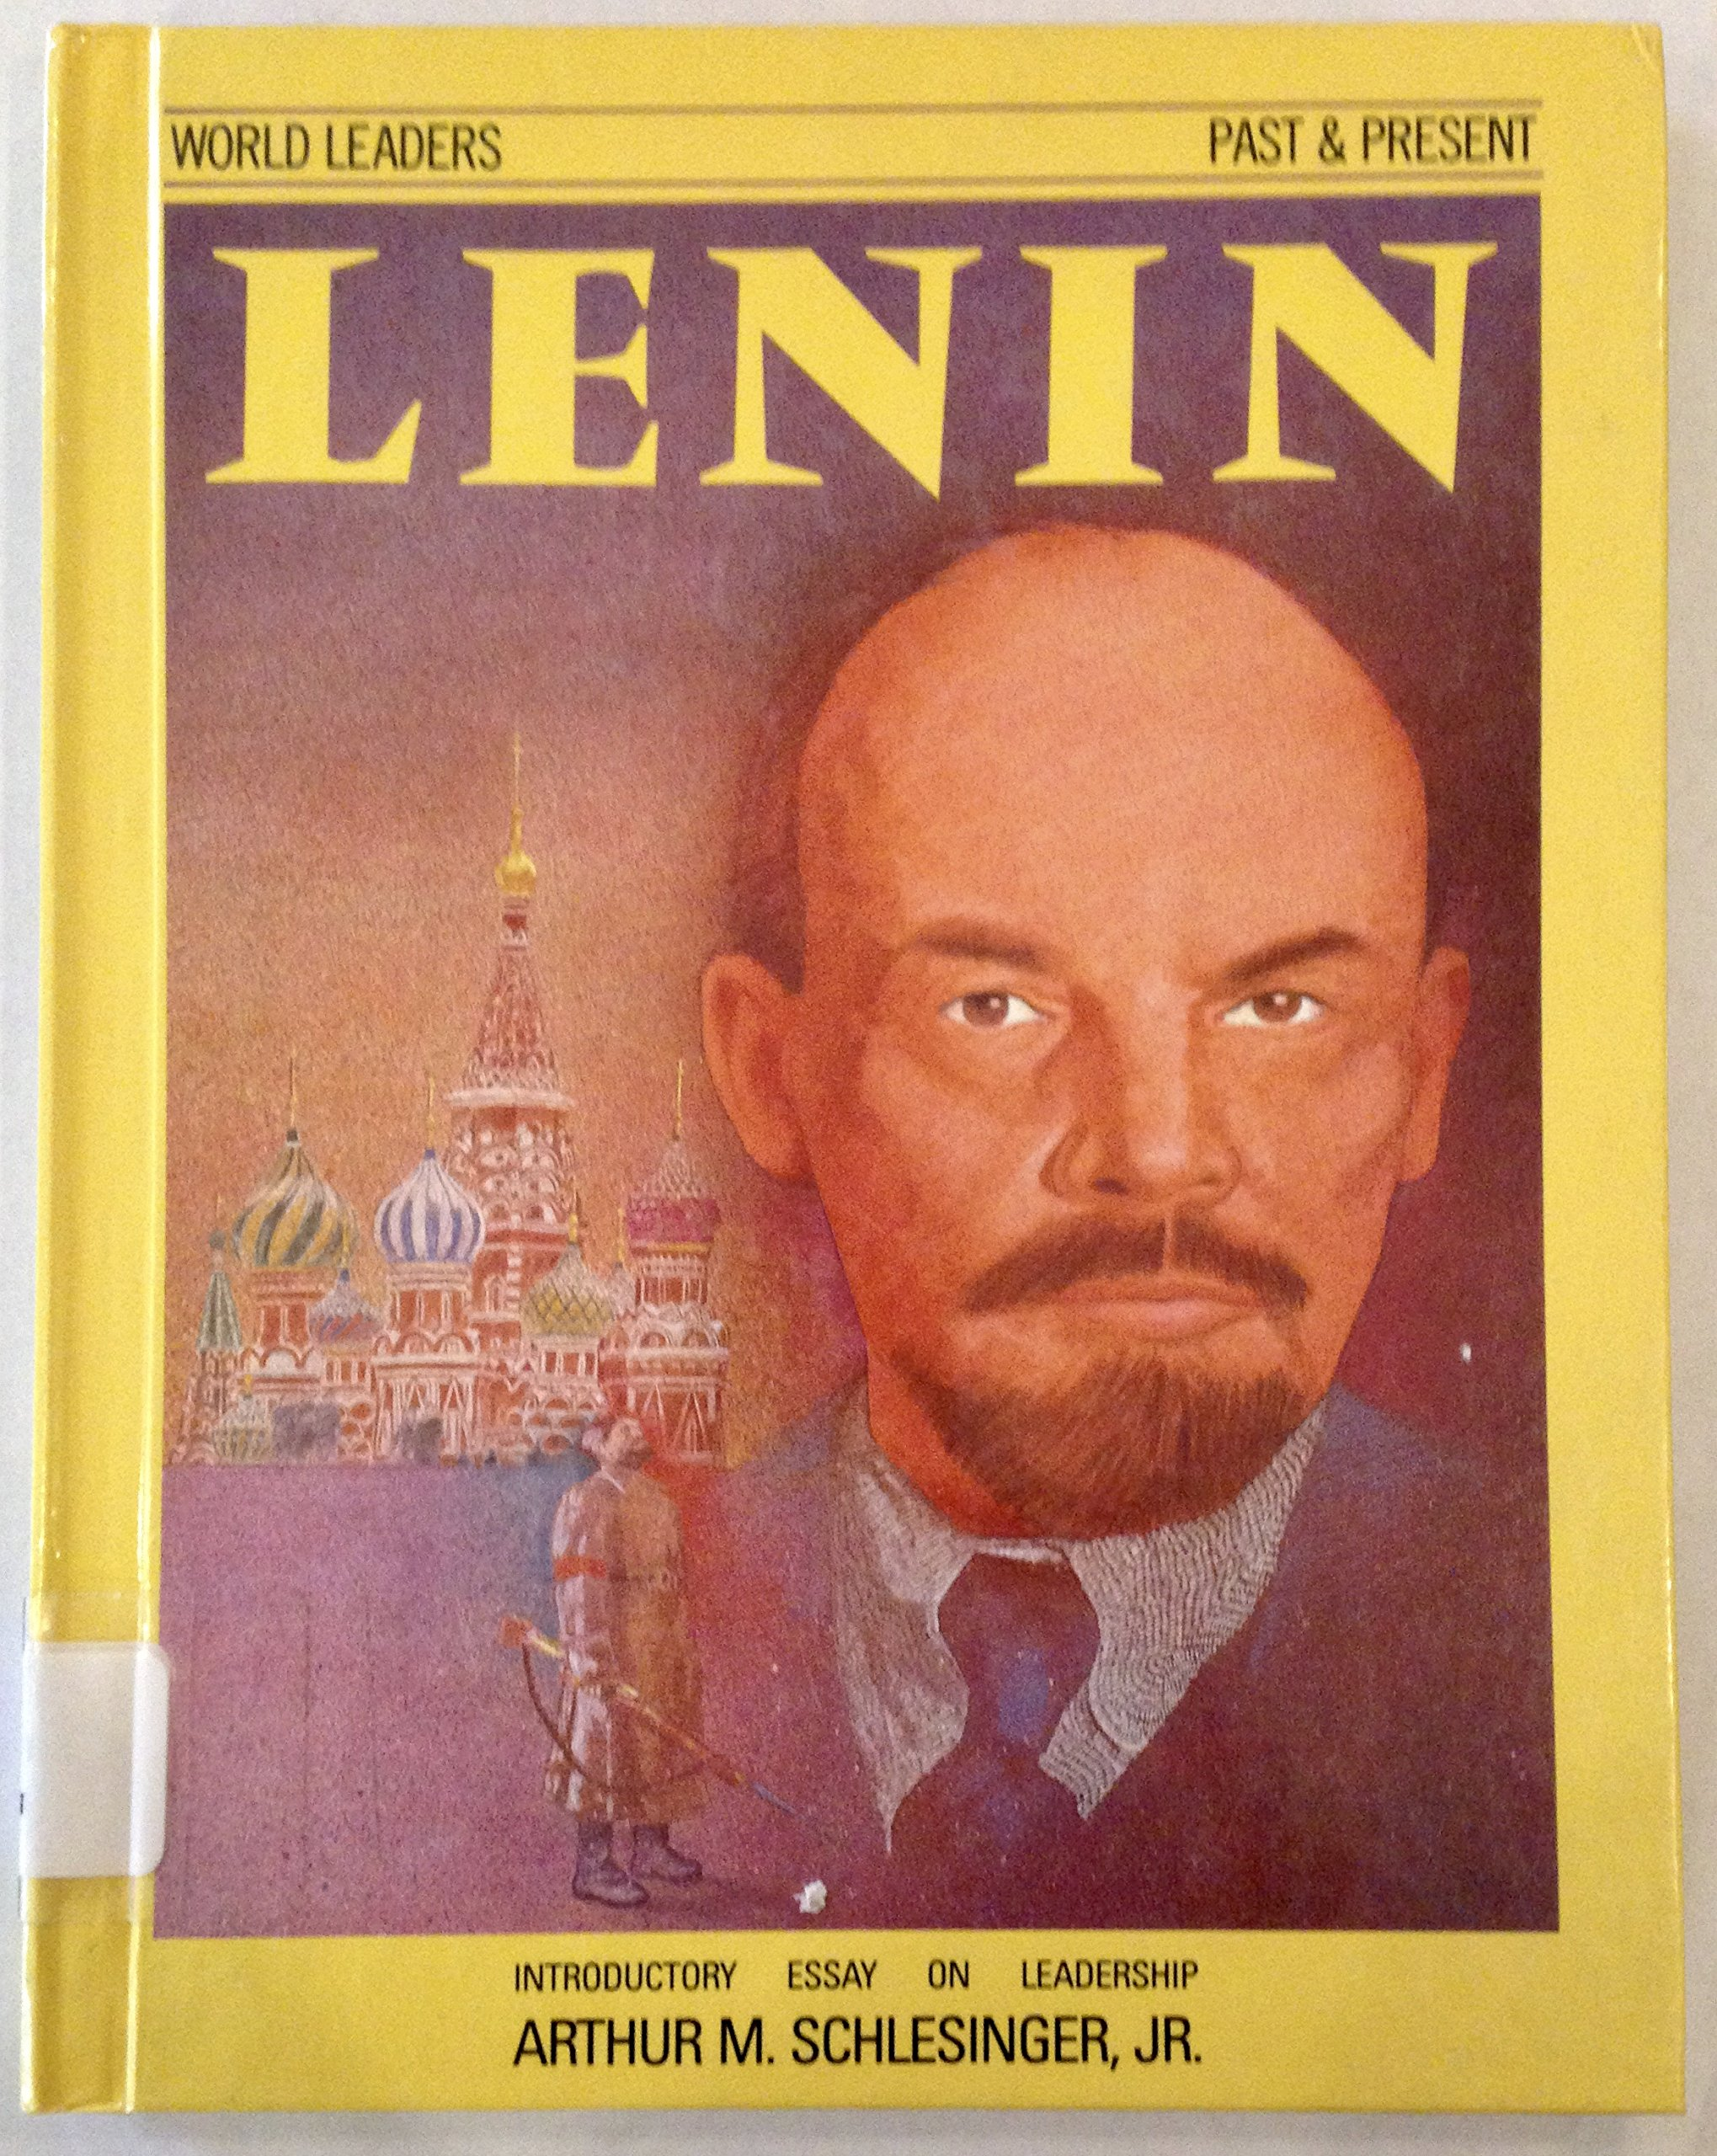 Essay On How To Start A Business Vladimir Ilich Lenin World Leaders Past And Present John Haney   Amazoncom Books How To Write A Good Thesis Statement For An Essay also Topics For Synthesis Essay Vladimir Ilich Lenin World Leaders Past And Present John Haney  Online Assignments